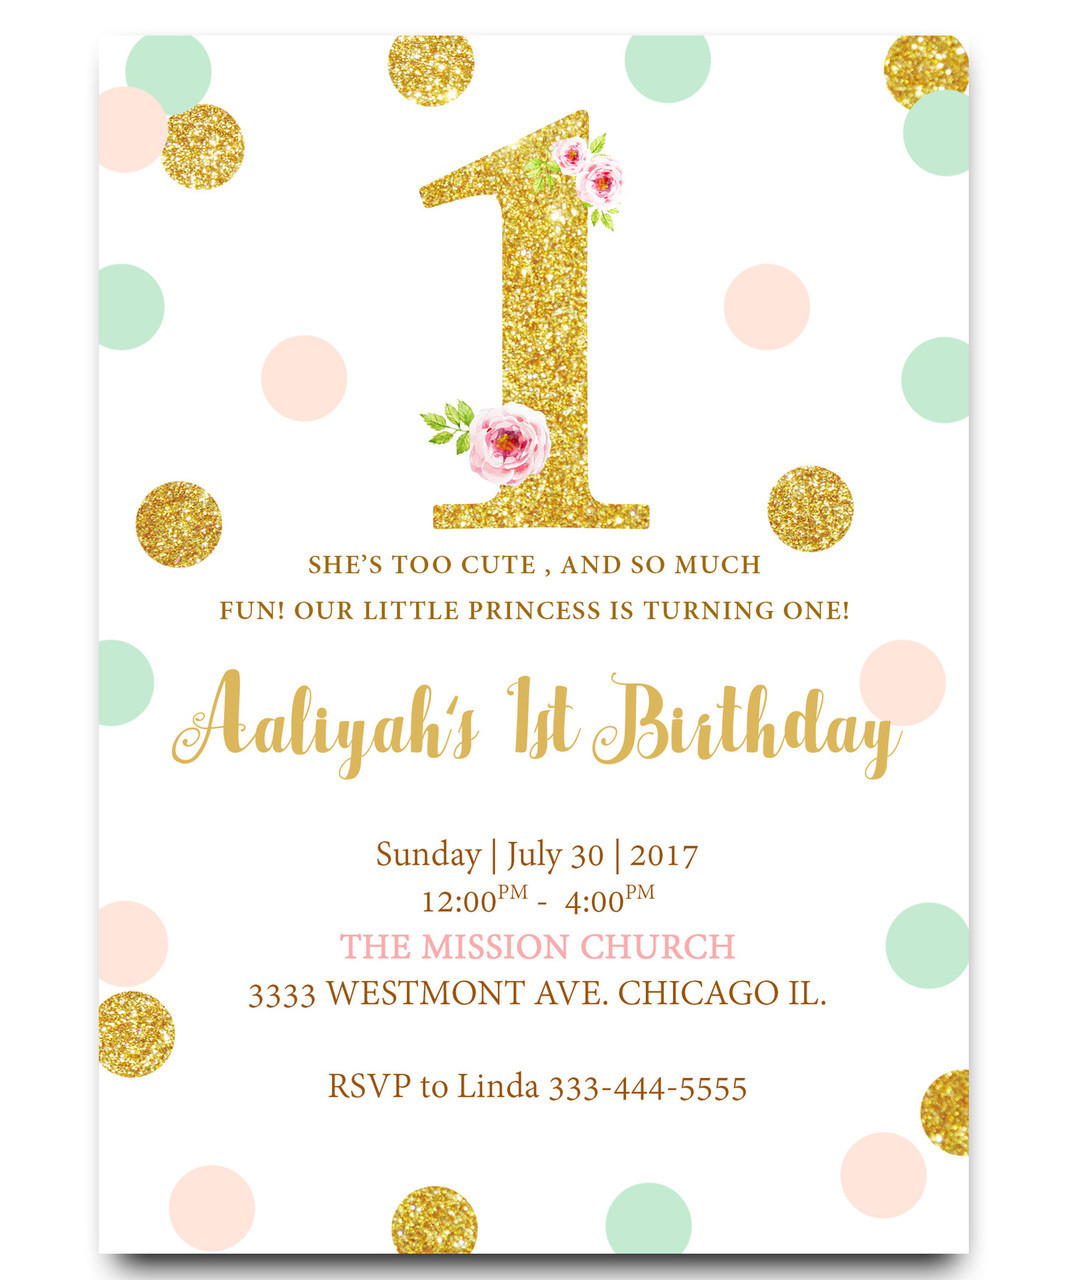 First birthday invitation glitter pink and blue 1st birthdaygirl birthday colorful girl birthday invitation cute birthday invitation filmwisefo Image collections